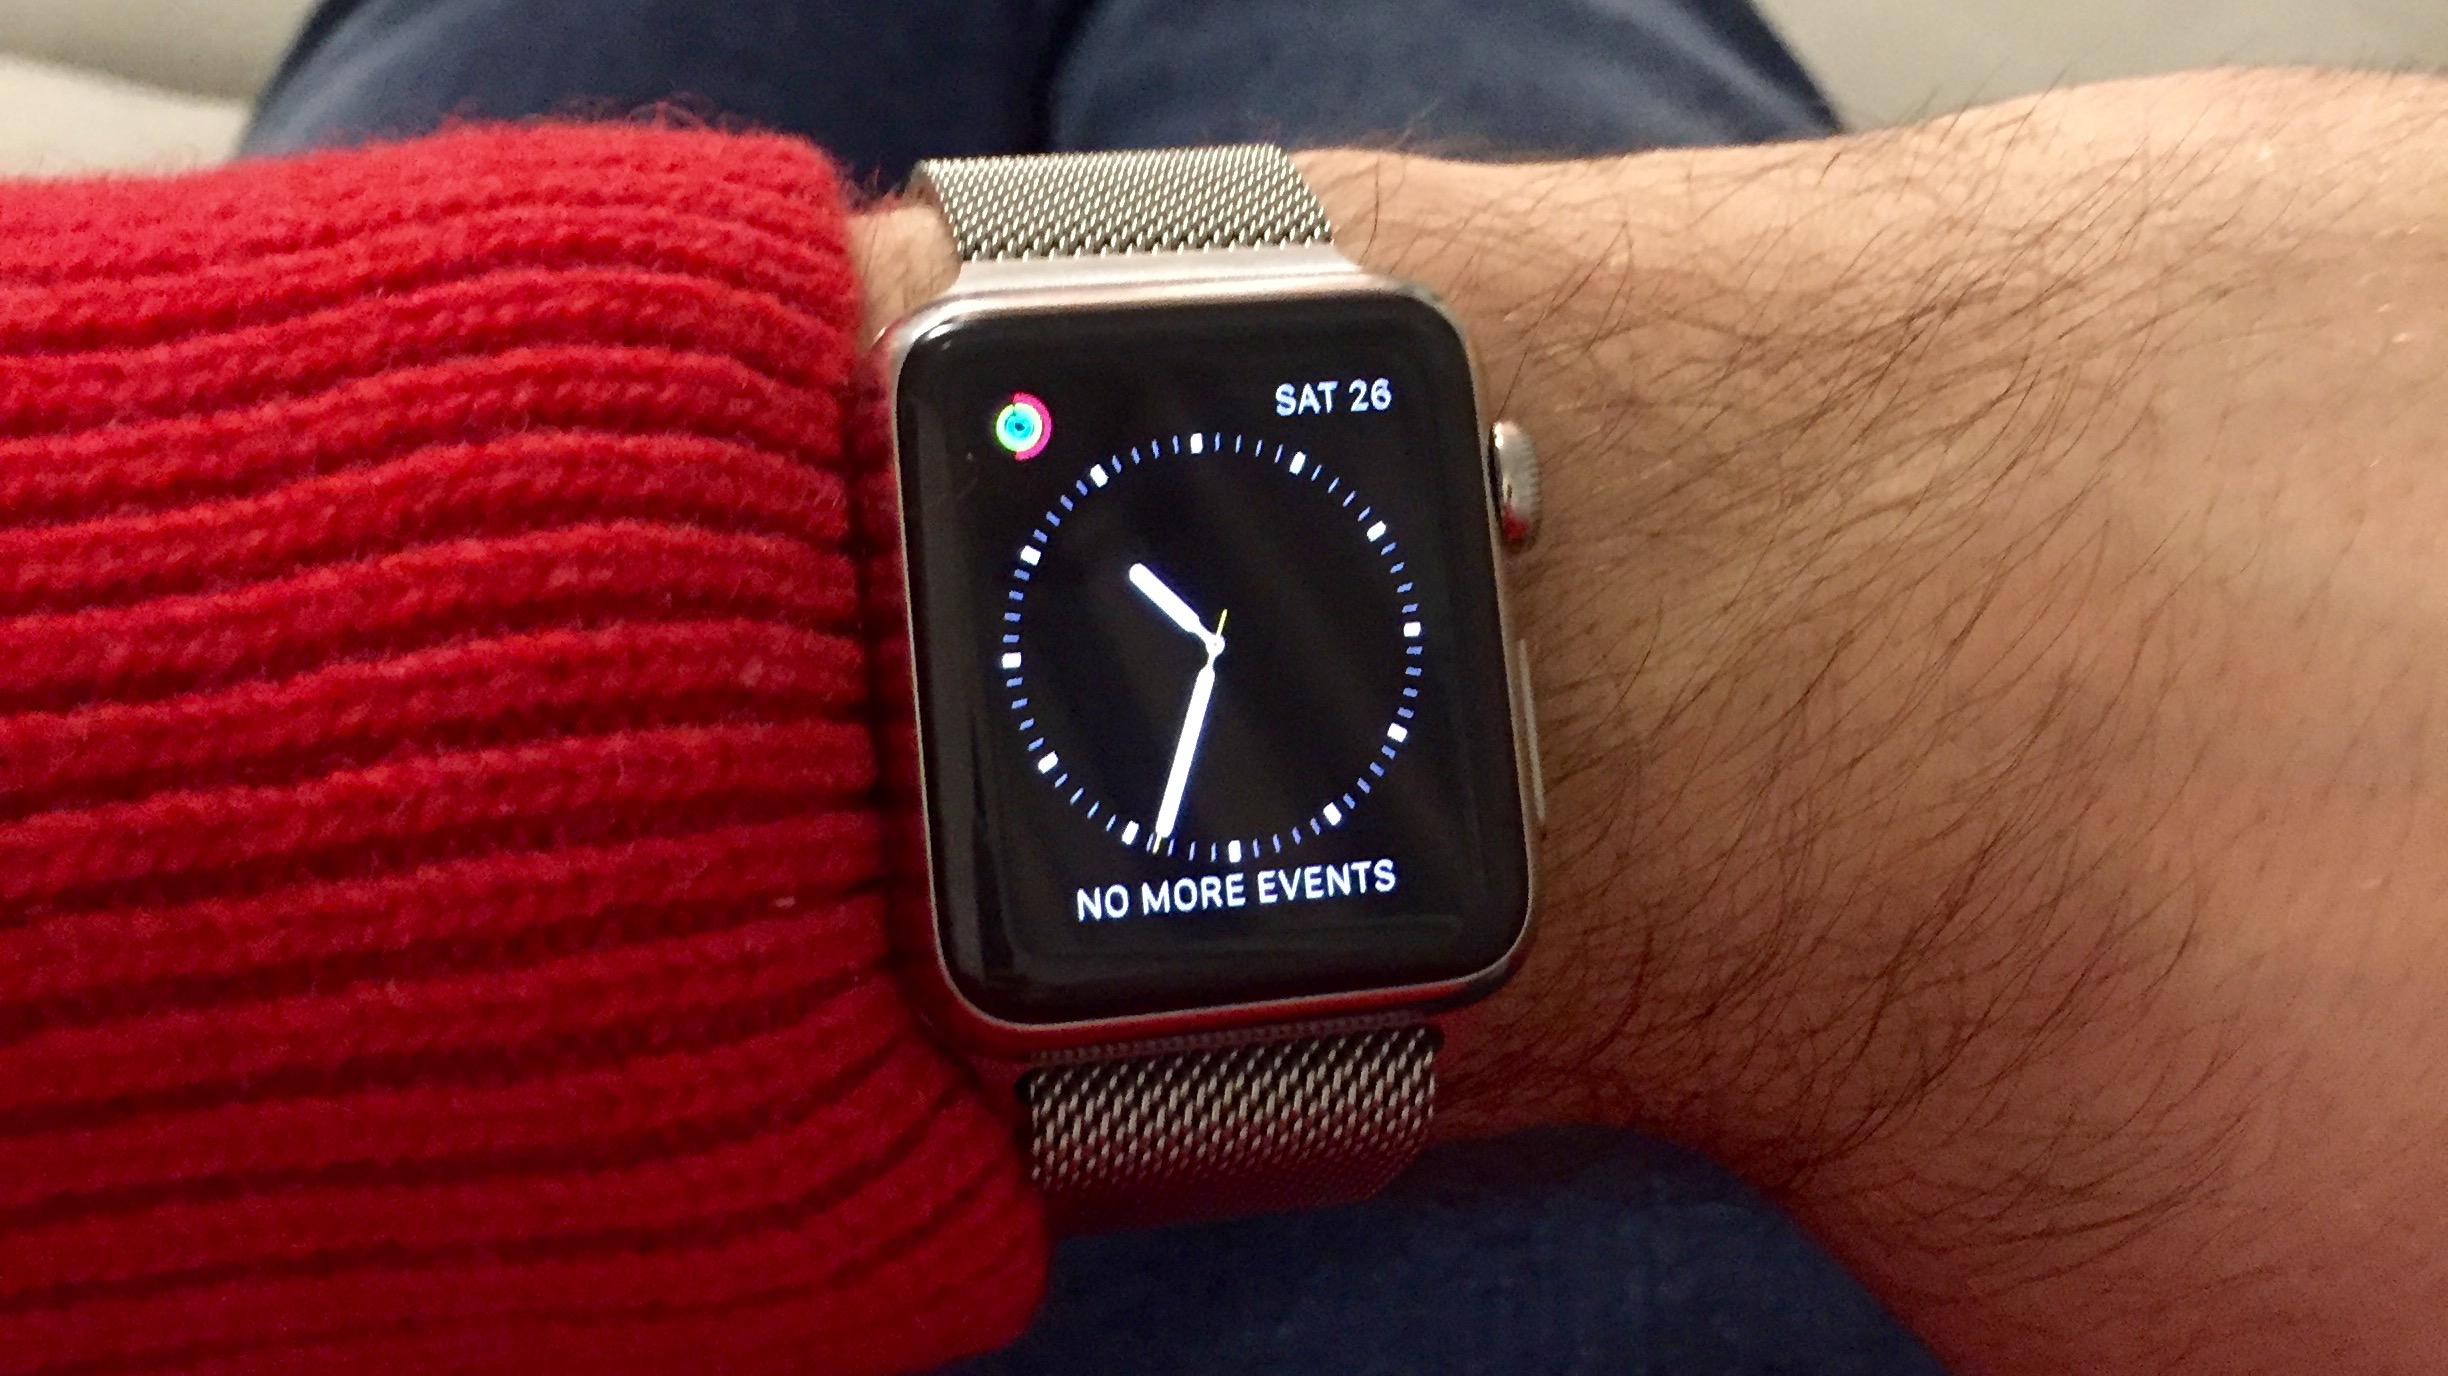 Wearing the Apple Watch with Milanese Loop on Boxing Day